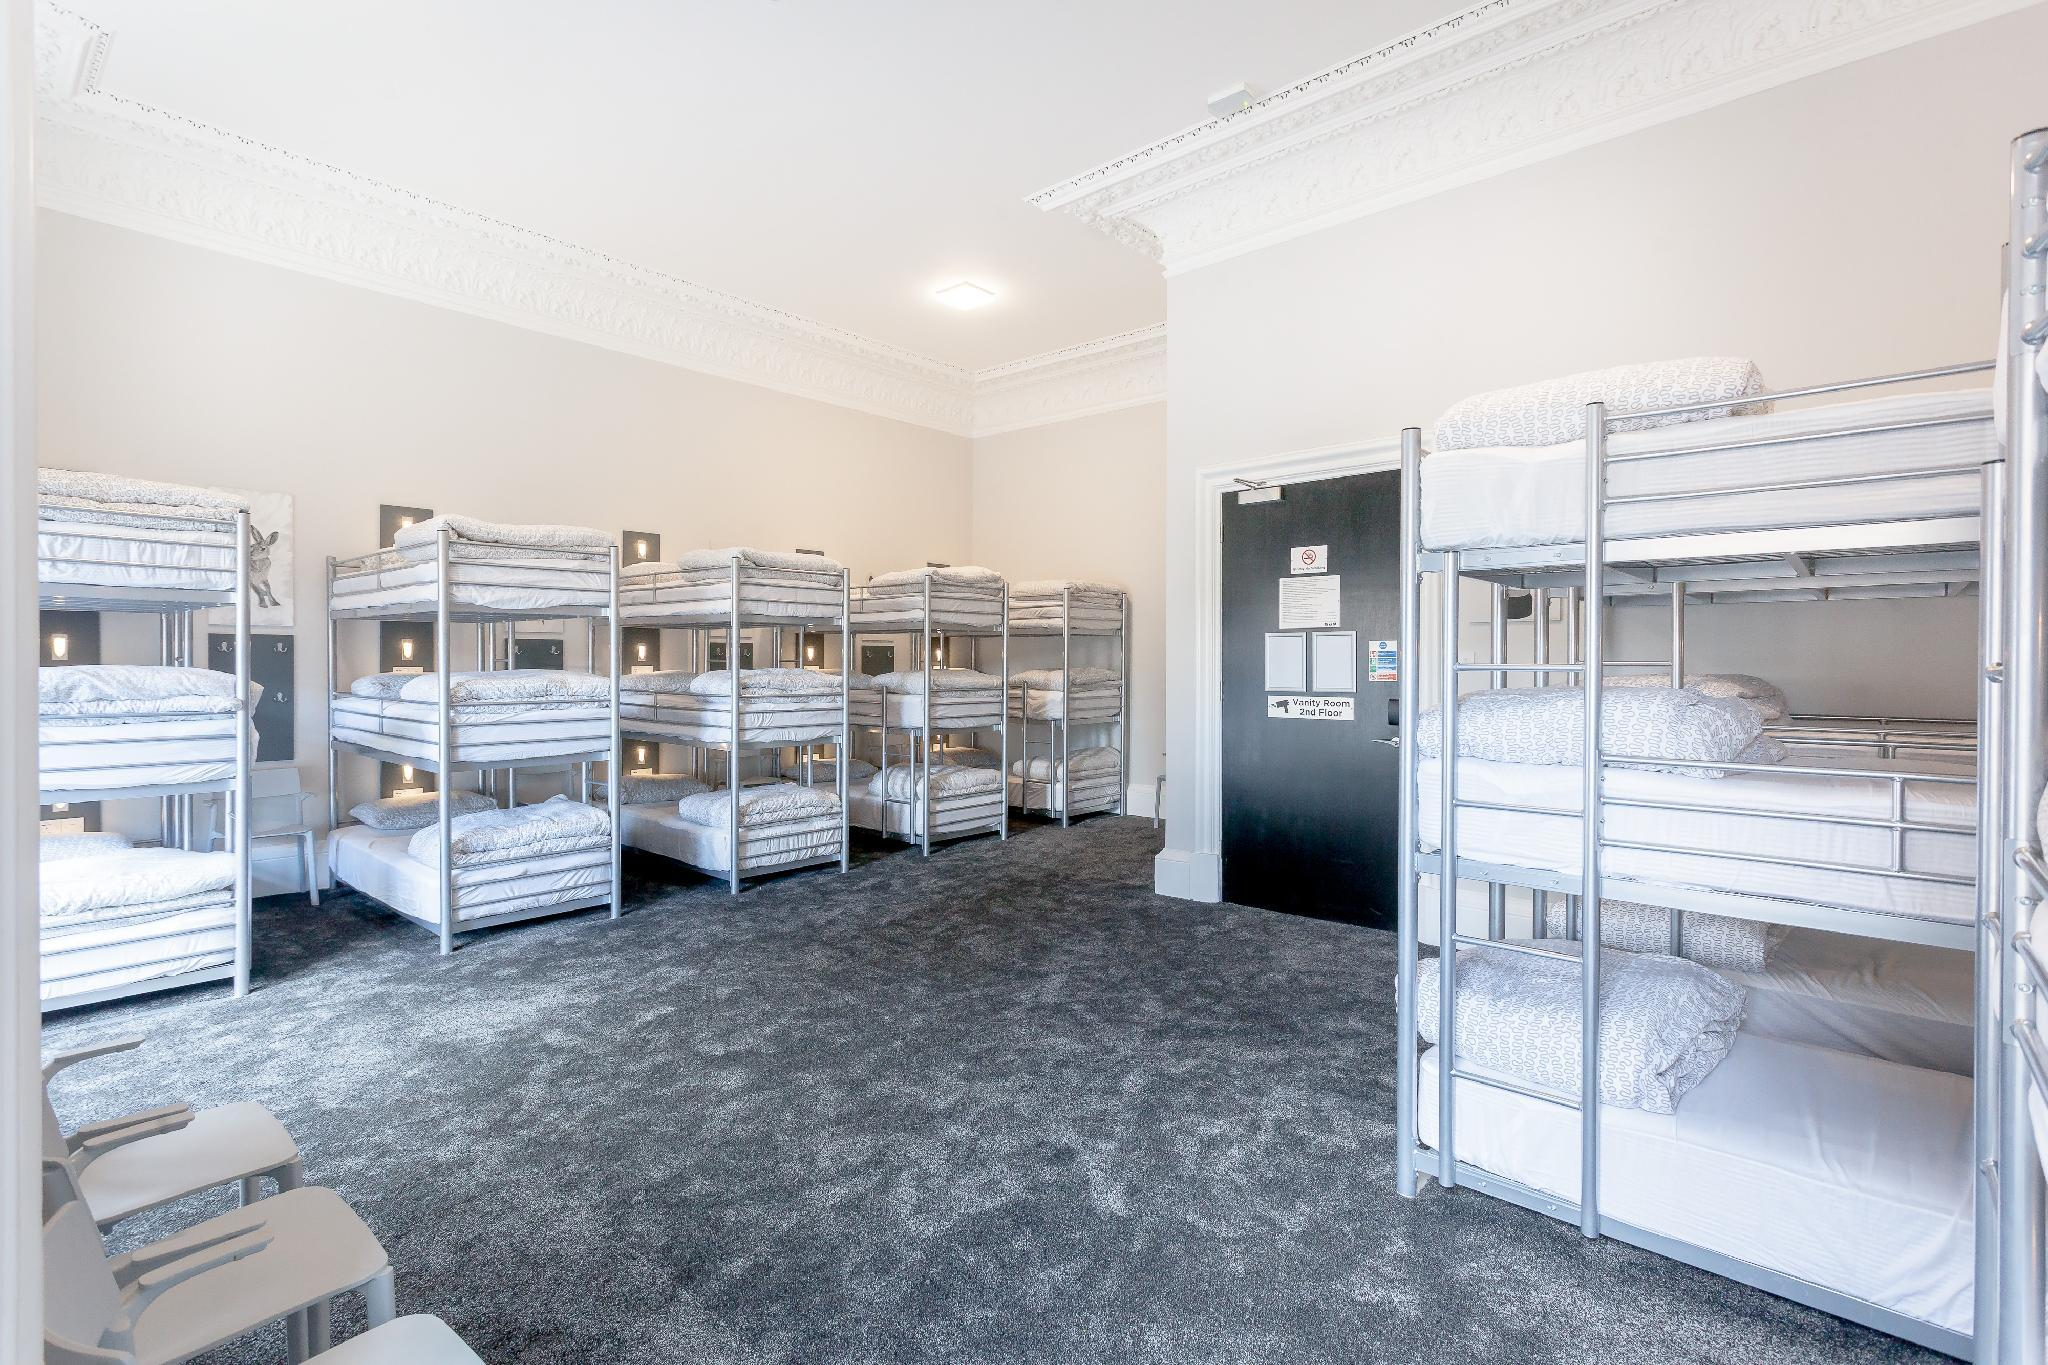 1 Person in 24-Bed Dormitory - Mixed